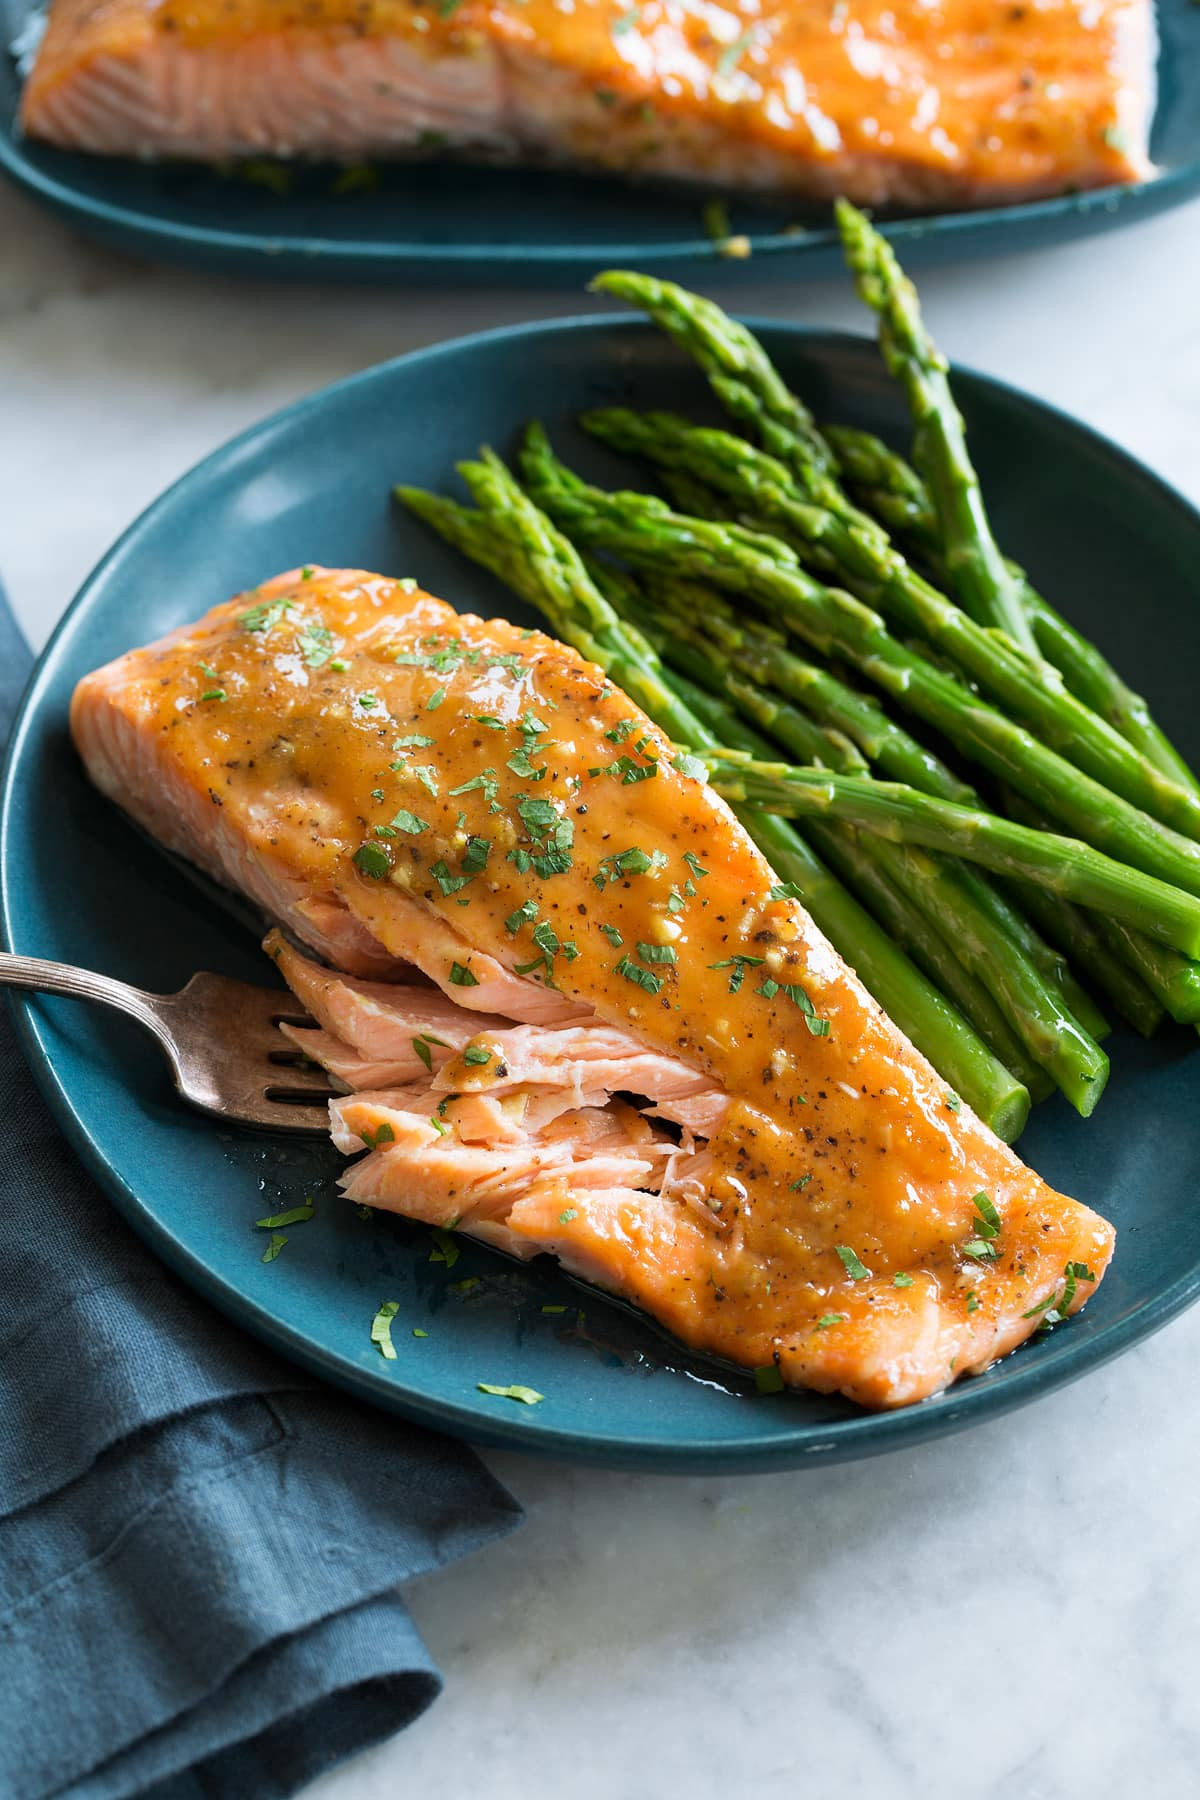 Photo of brown sugar salmon with serving suggestion of steamed asparagus. Served on a blue plate with a blue cloth to the side.